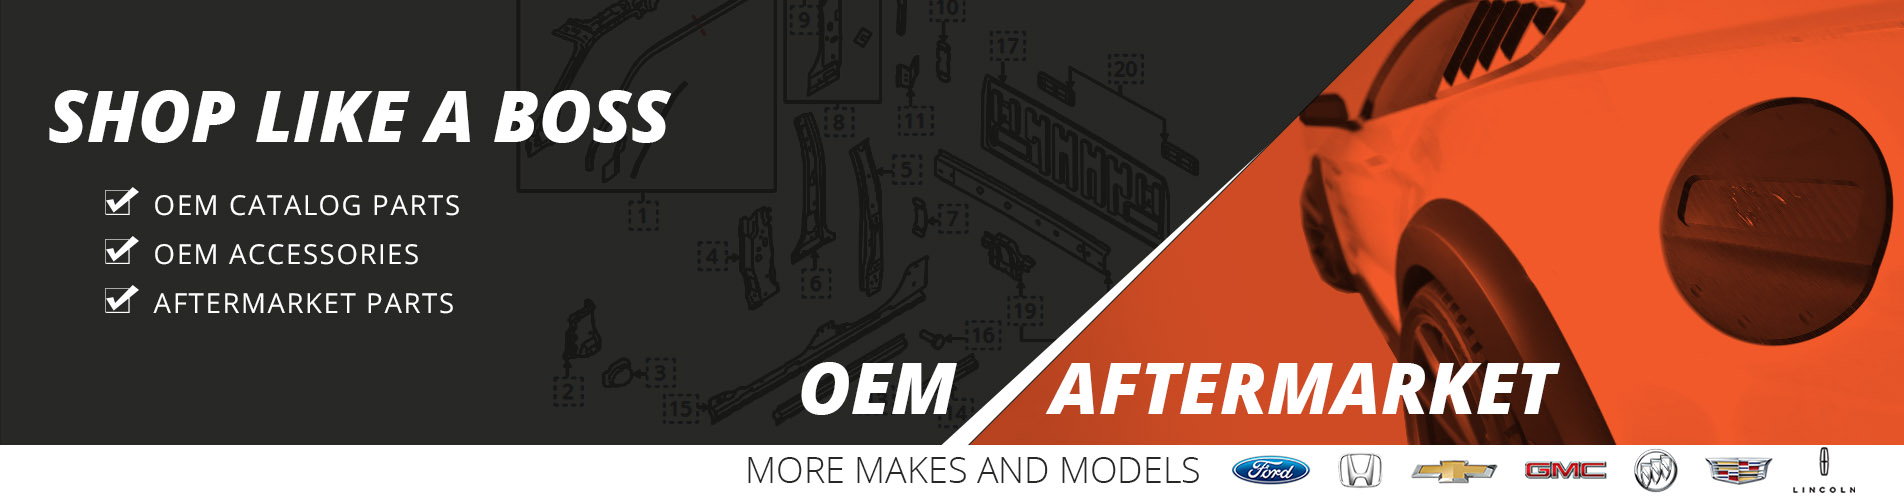 Welcome to our new website! OEM, Aftermarket Parts and Accessories.